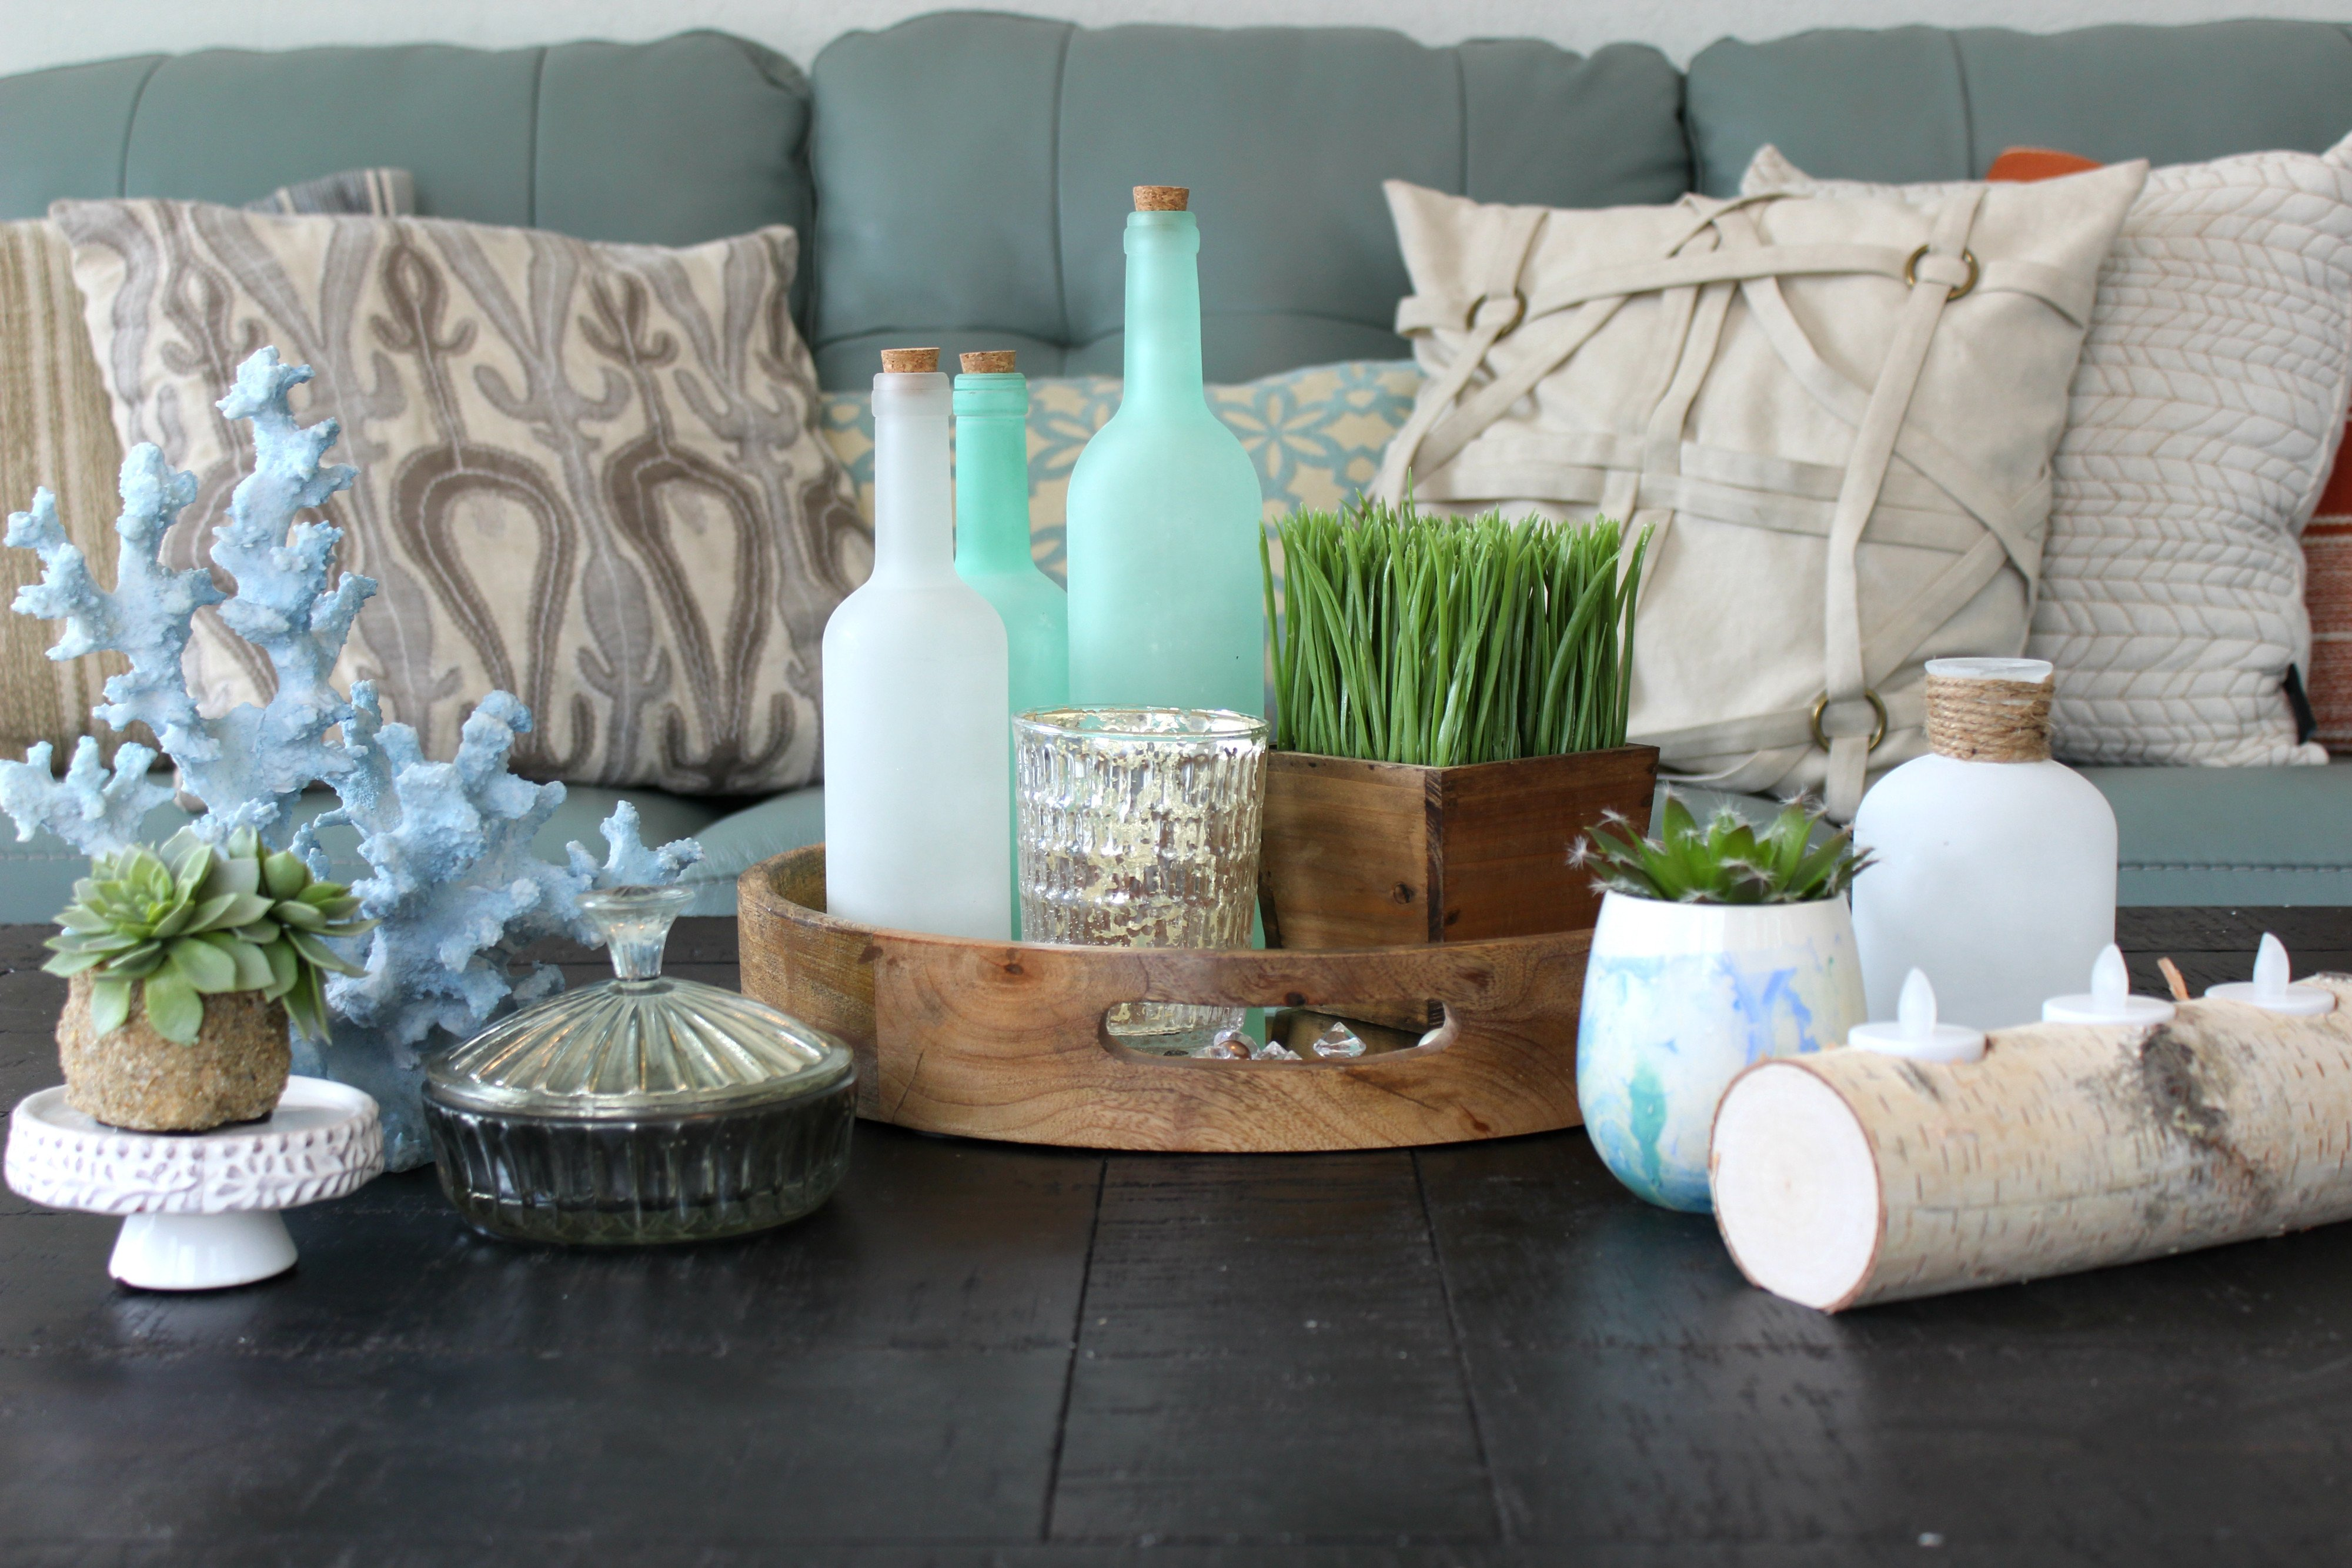 Living Room Table Decor Ideas Fresh Coffee Table Decorating Ideas to Match Every Style